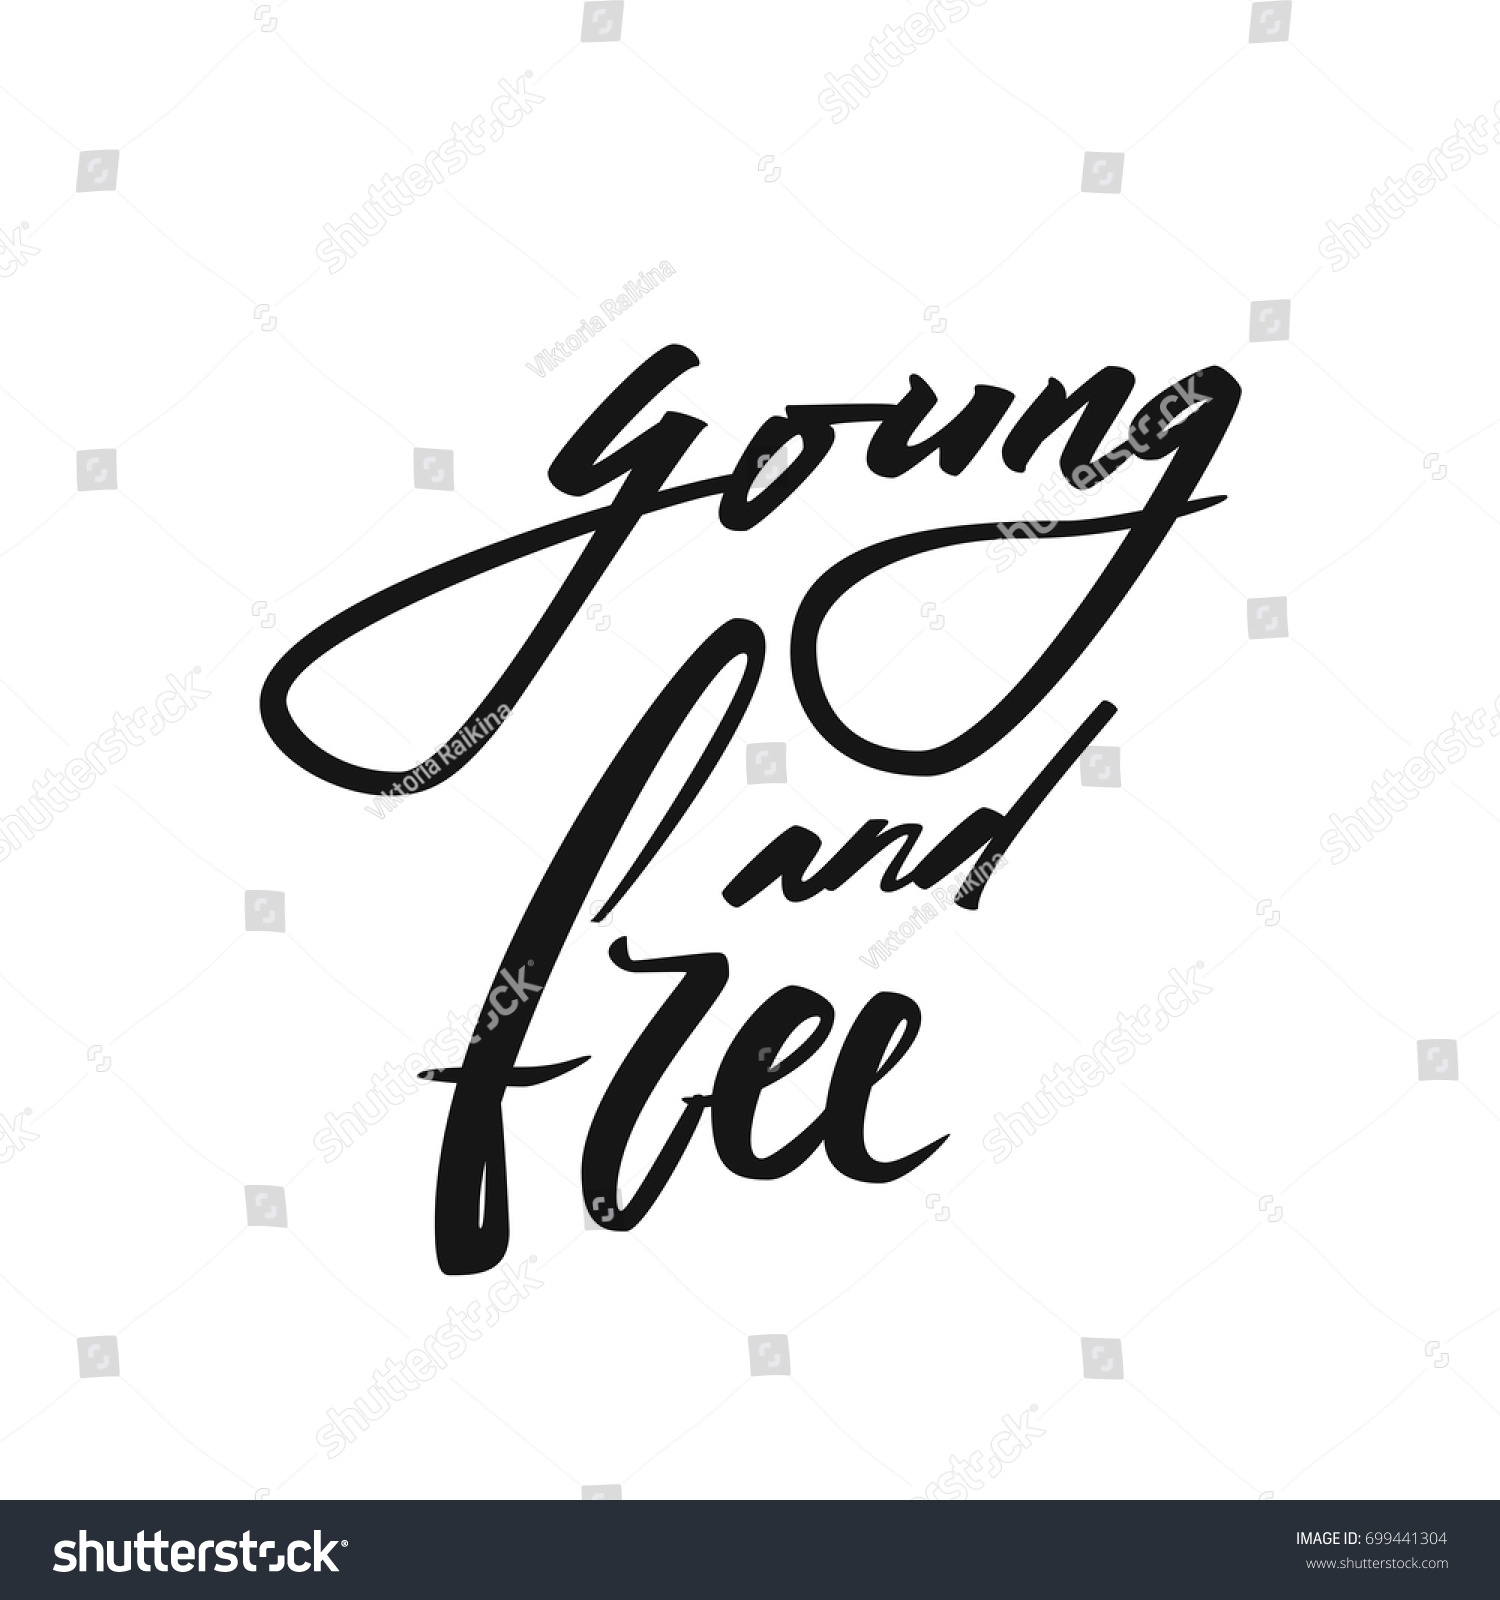 Young Free Quote Vector Calligraphy Image Stock Vector Royalty Free